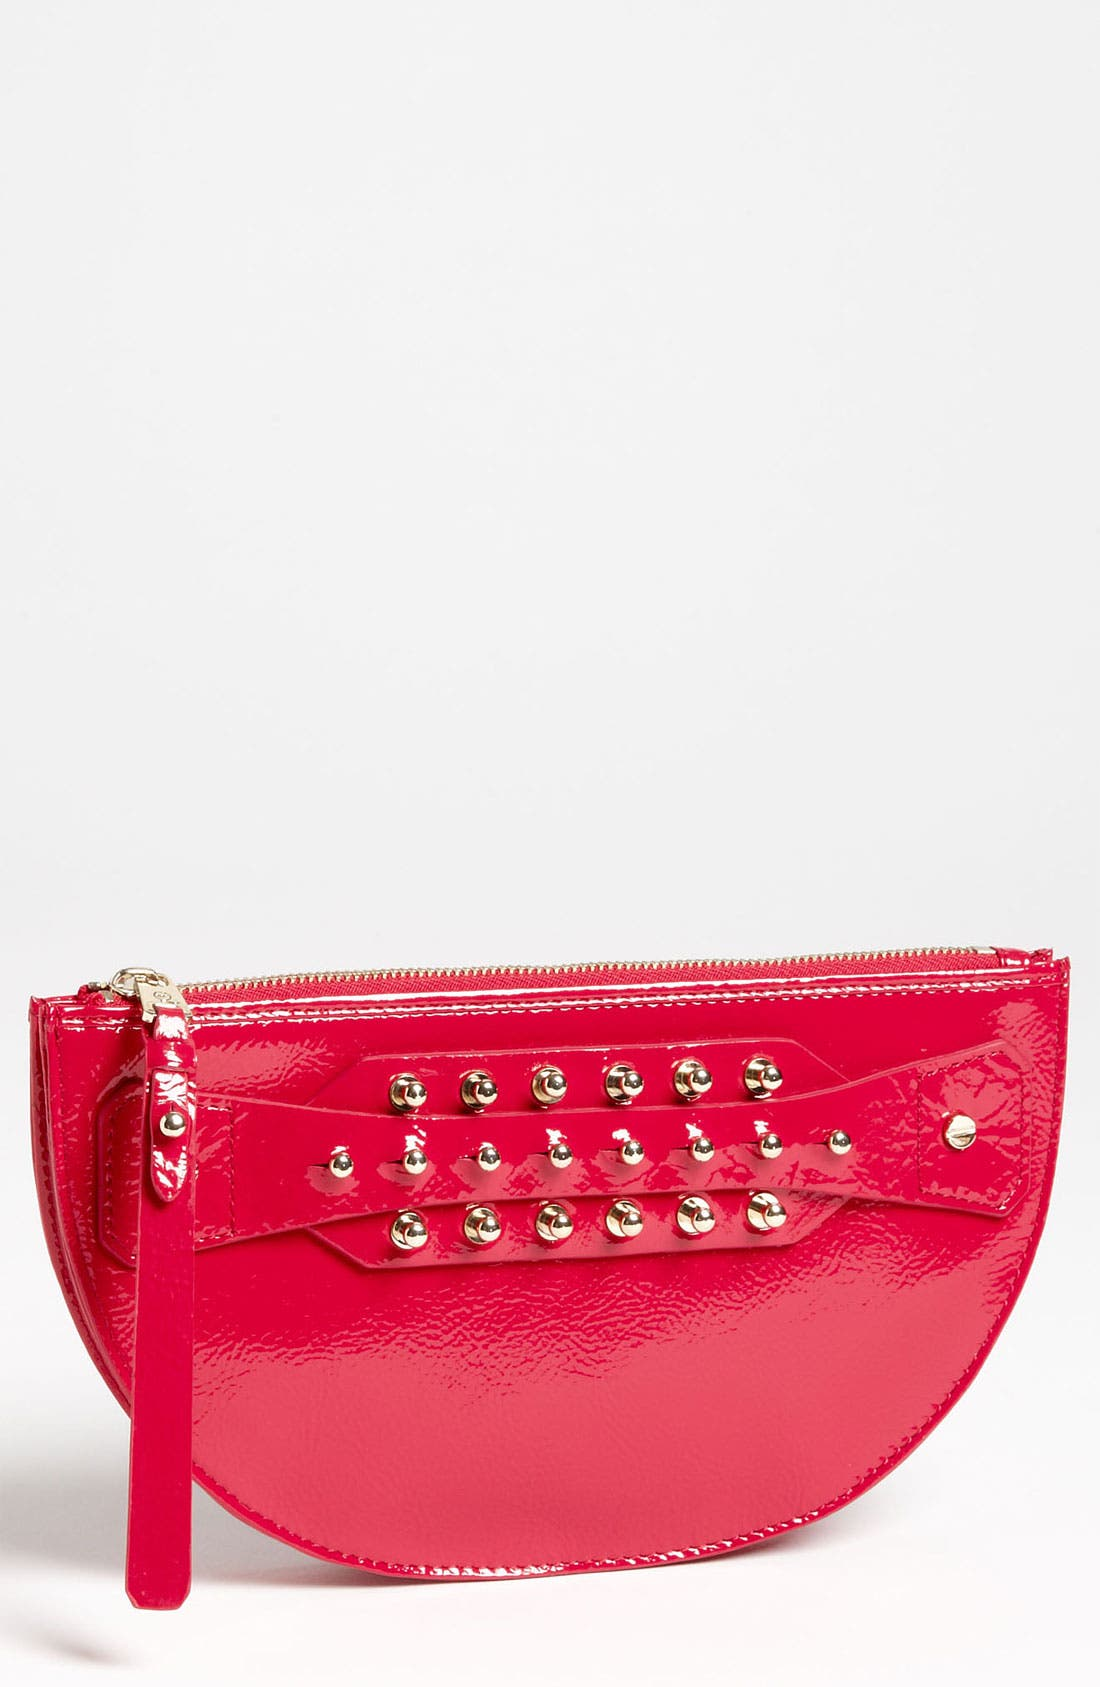 Alternate Image 1 Selected - McQ by Alexander McQueen 'Large' Patent Leather Coin Clutch